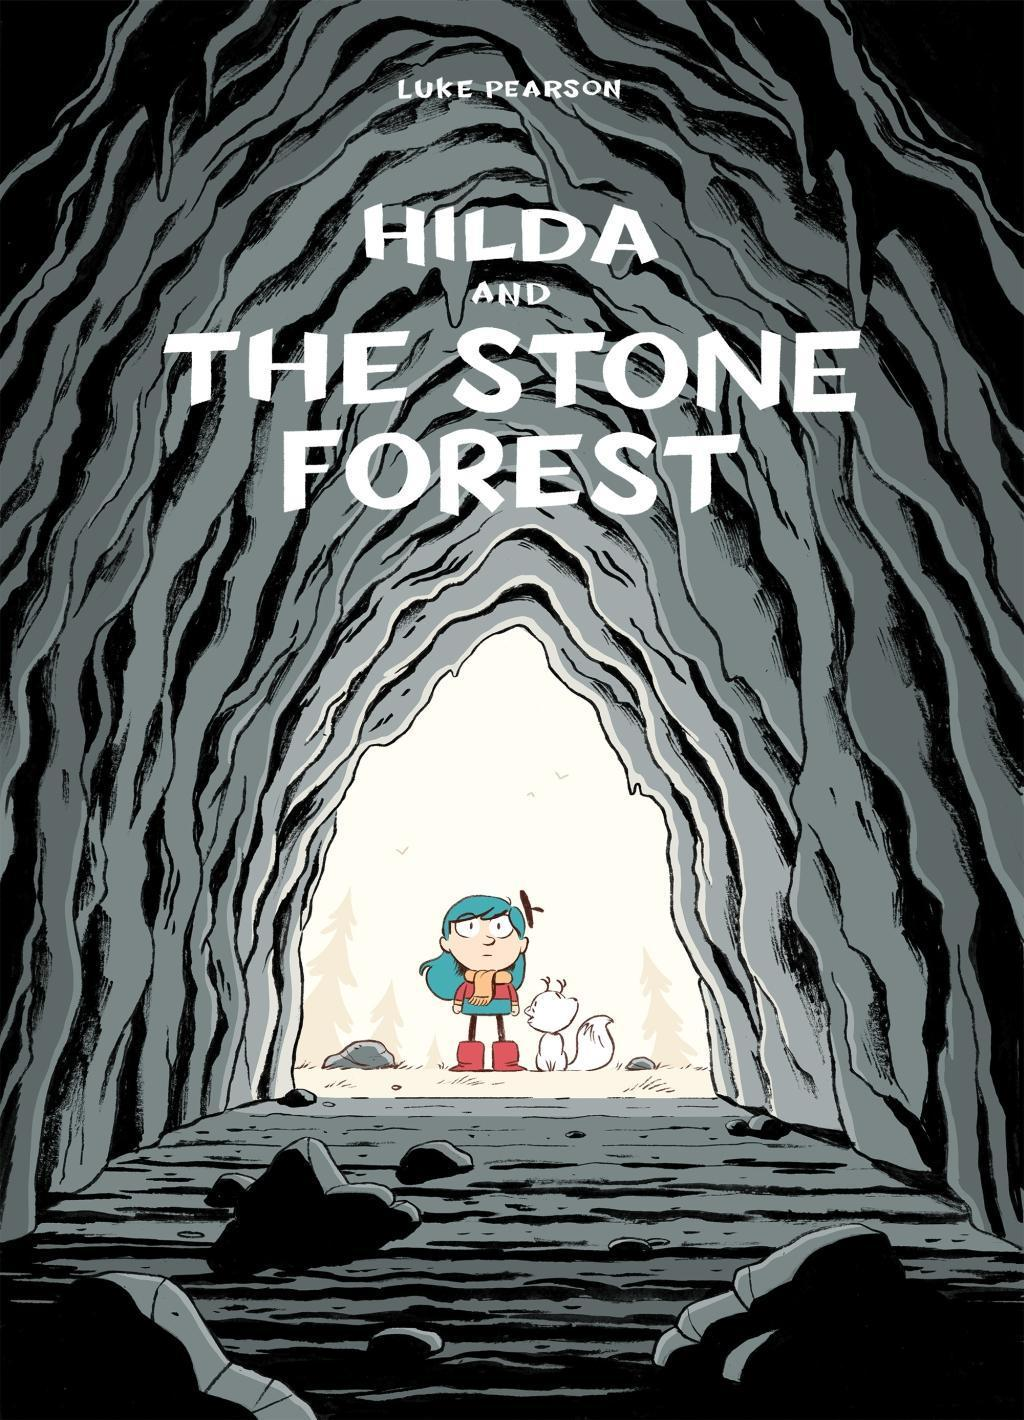 Hilda and the Stone Forest, Luke Pearson